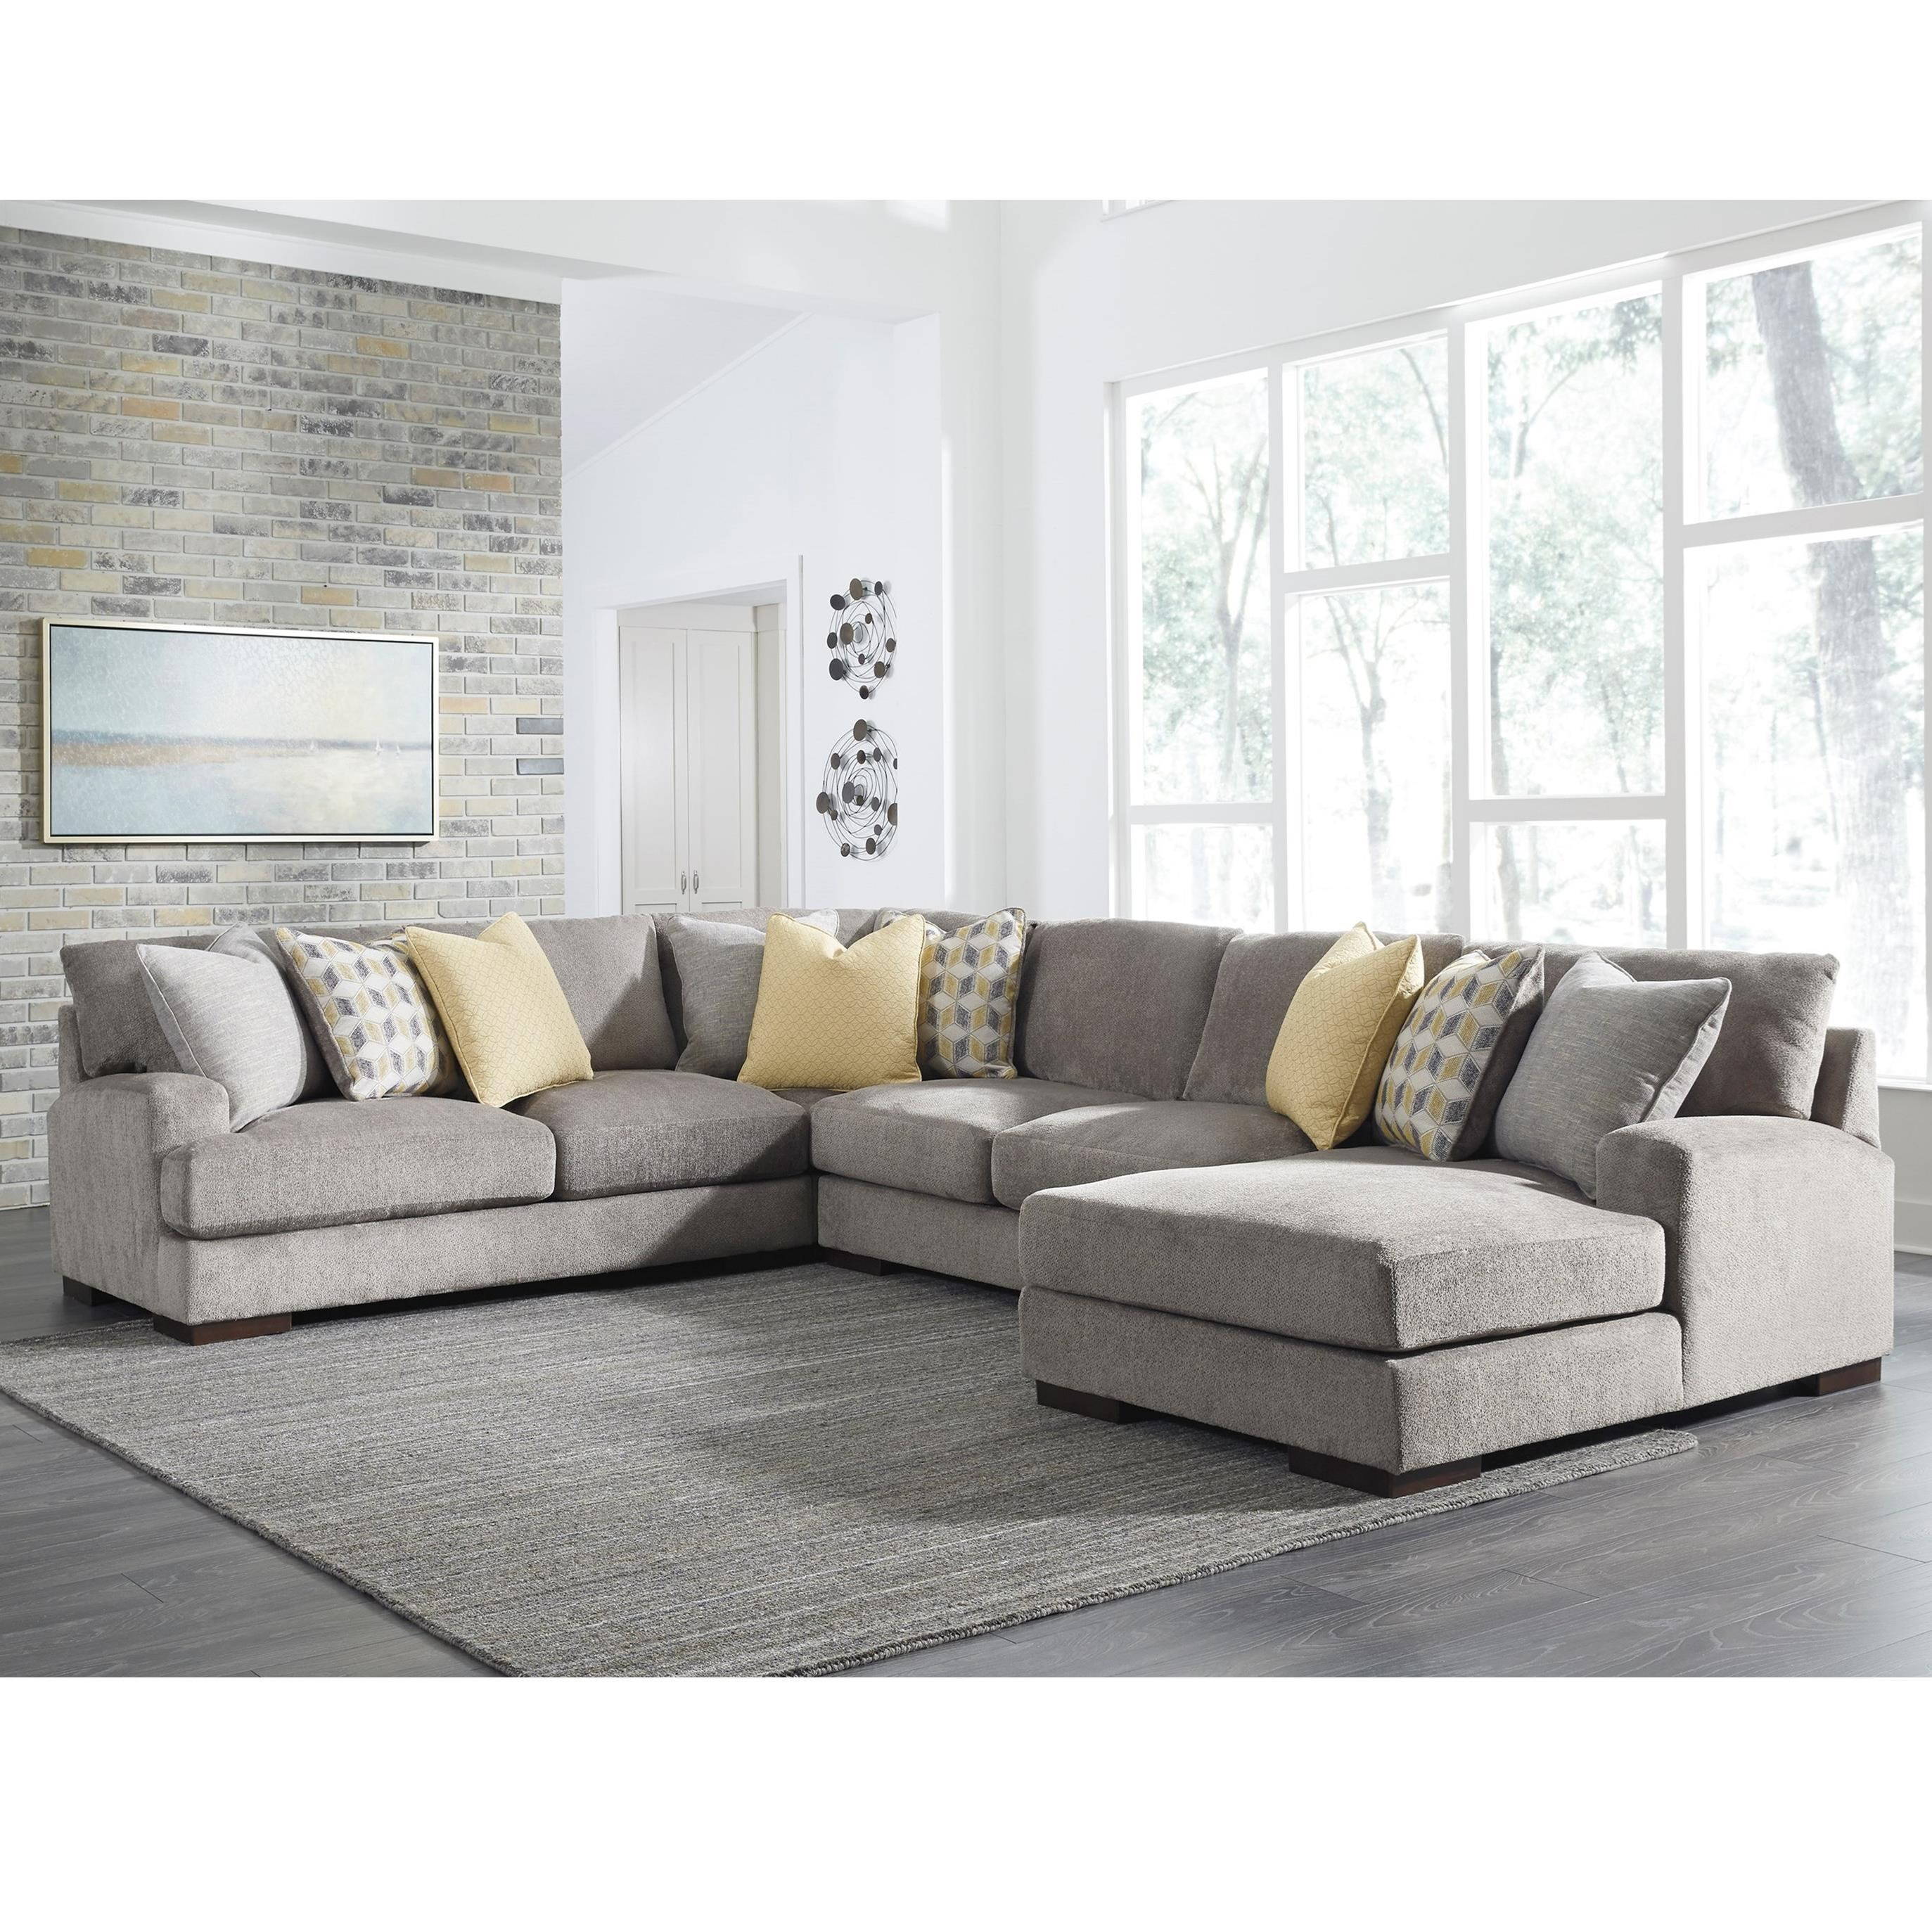 Benchcraft Fallsworth Contemporary 4 Piece Sectional